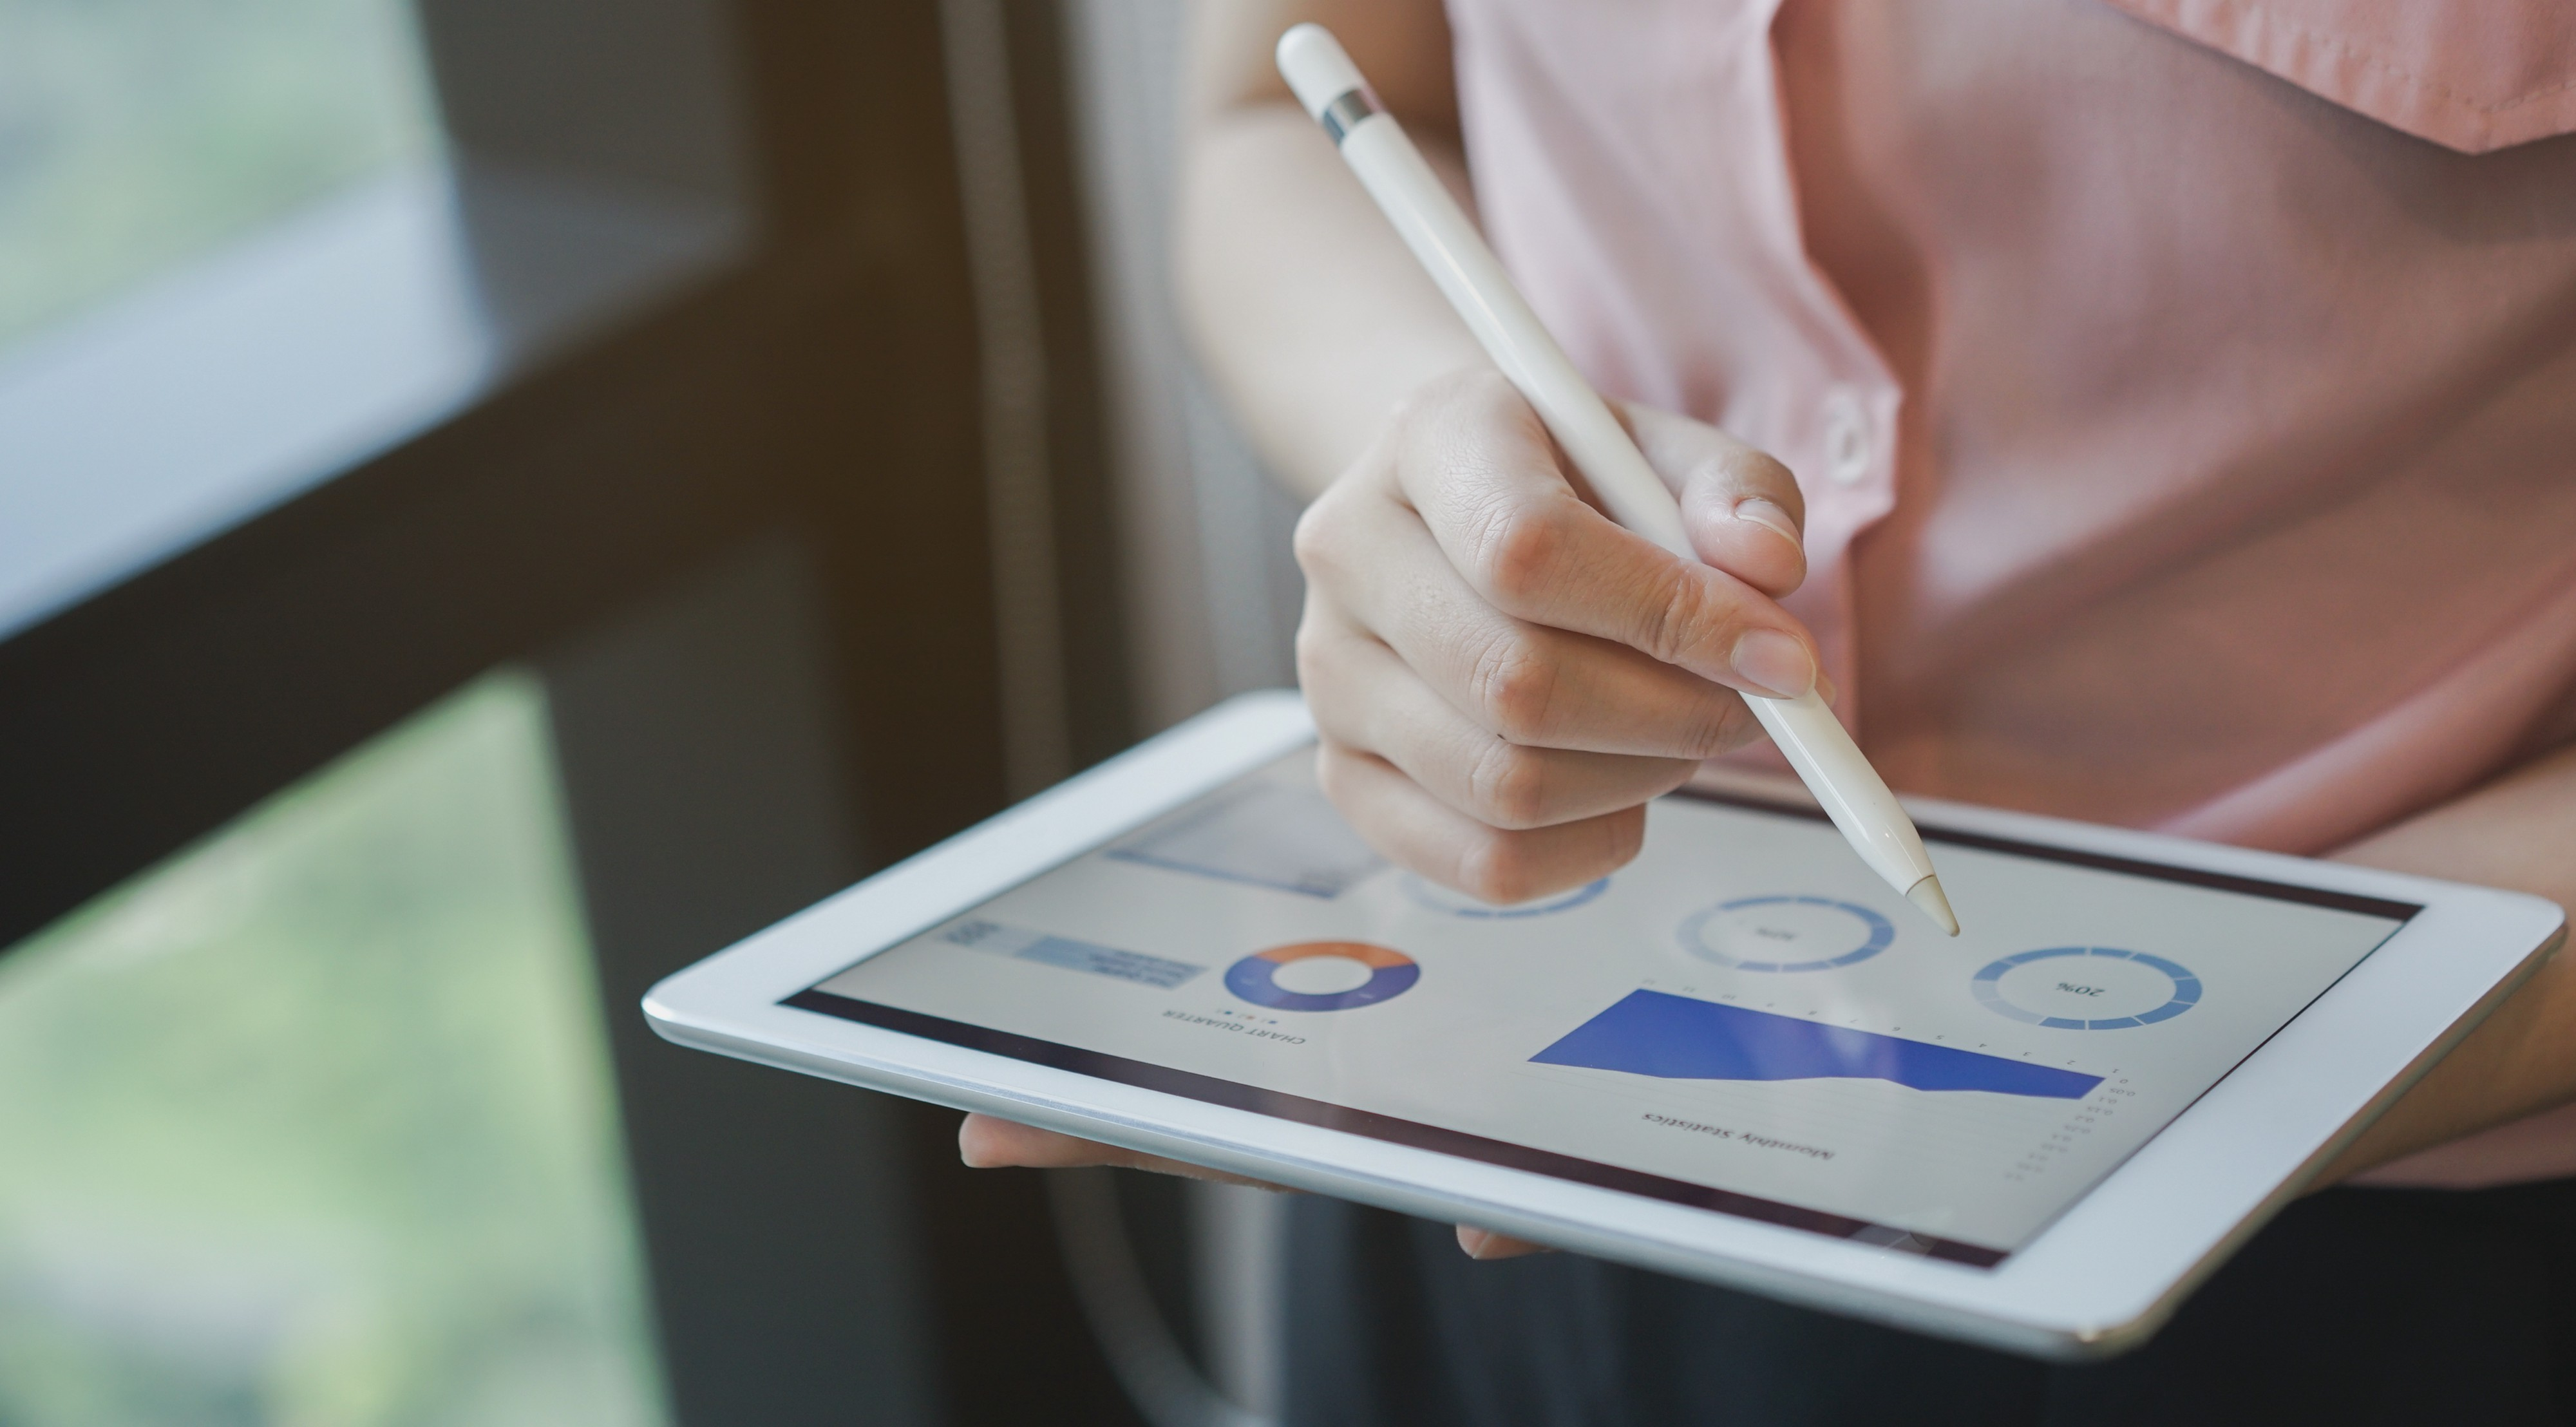 A close up on businesswoman's hand using a stylus pen on a tablet, commenting on a metrics dashboard.